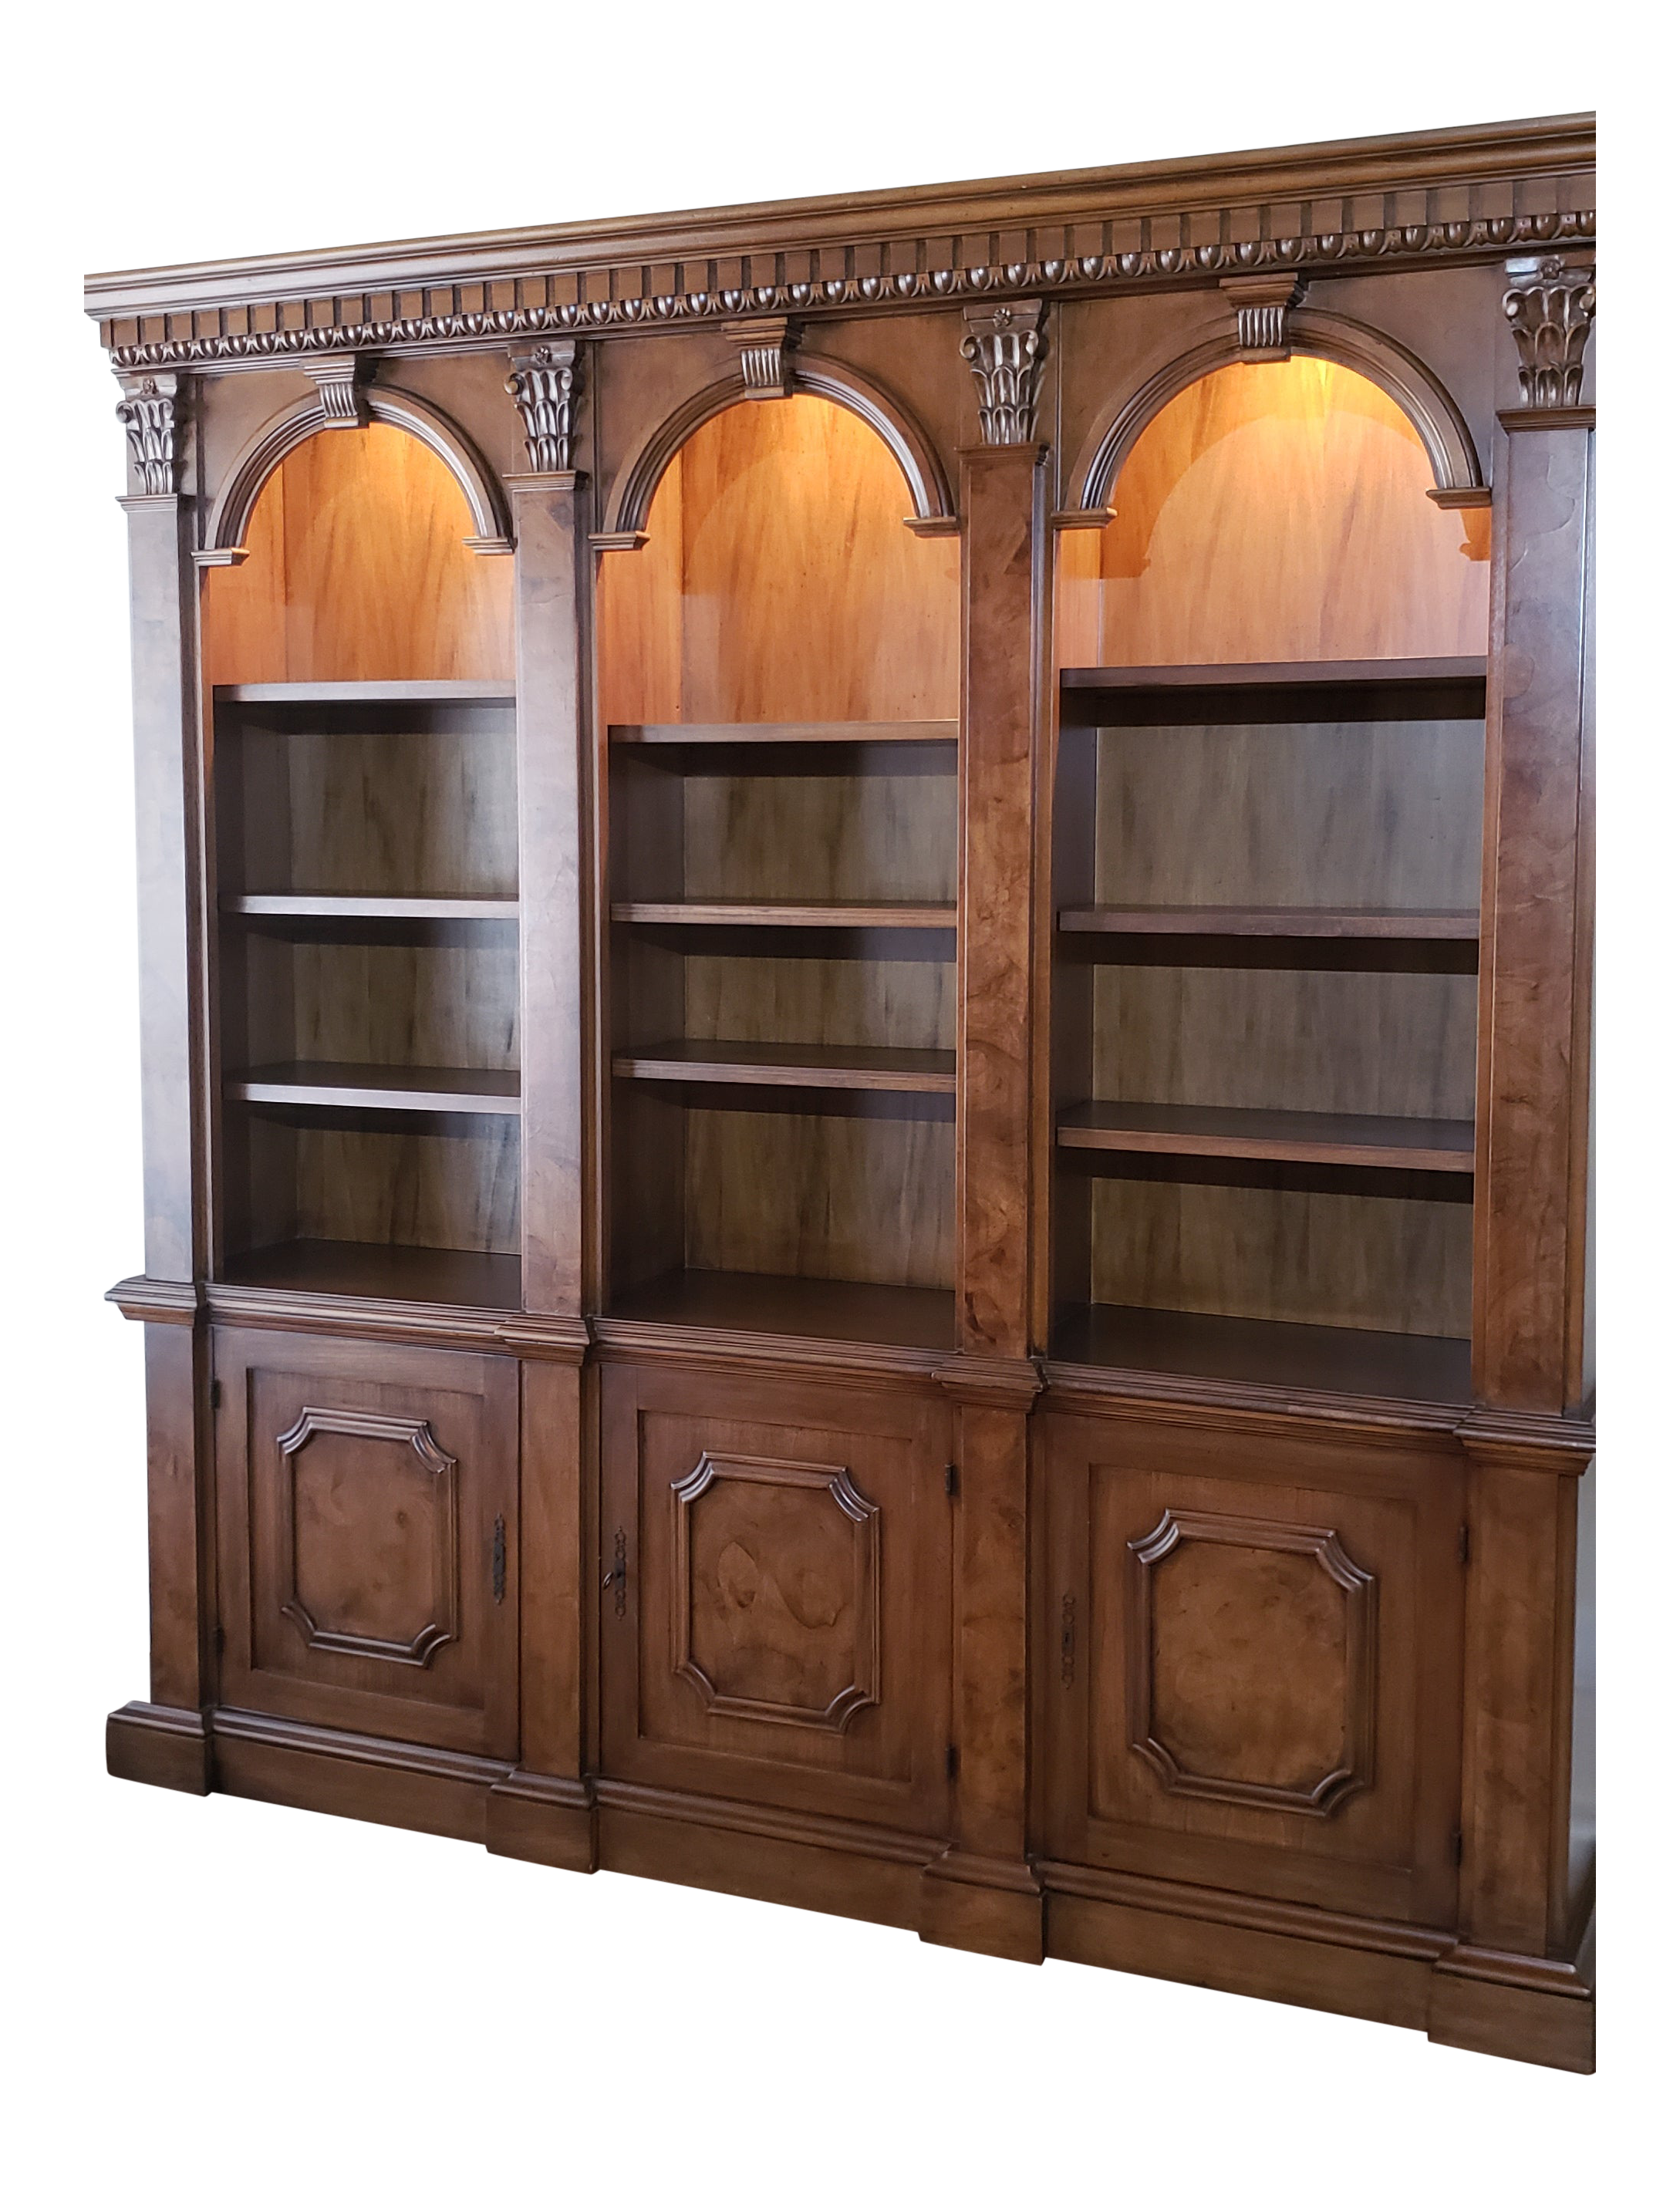 Architectural Bookcase With Burled Inlays And Locking Storage